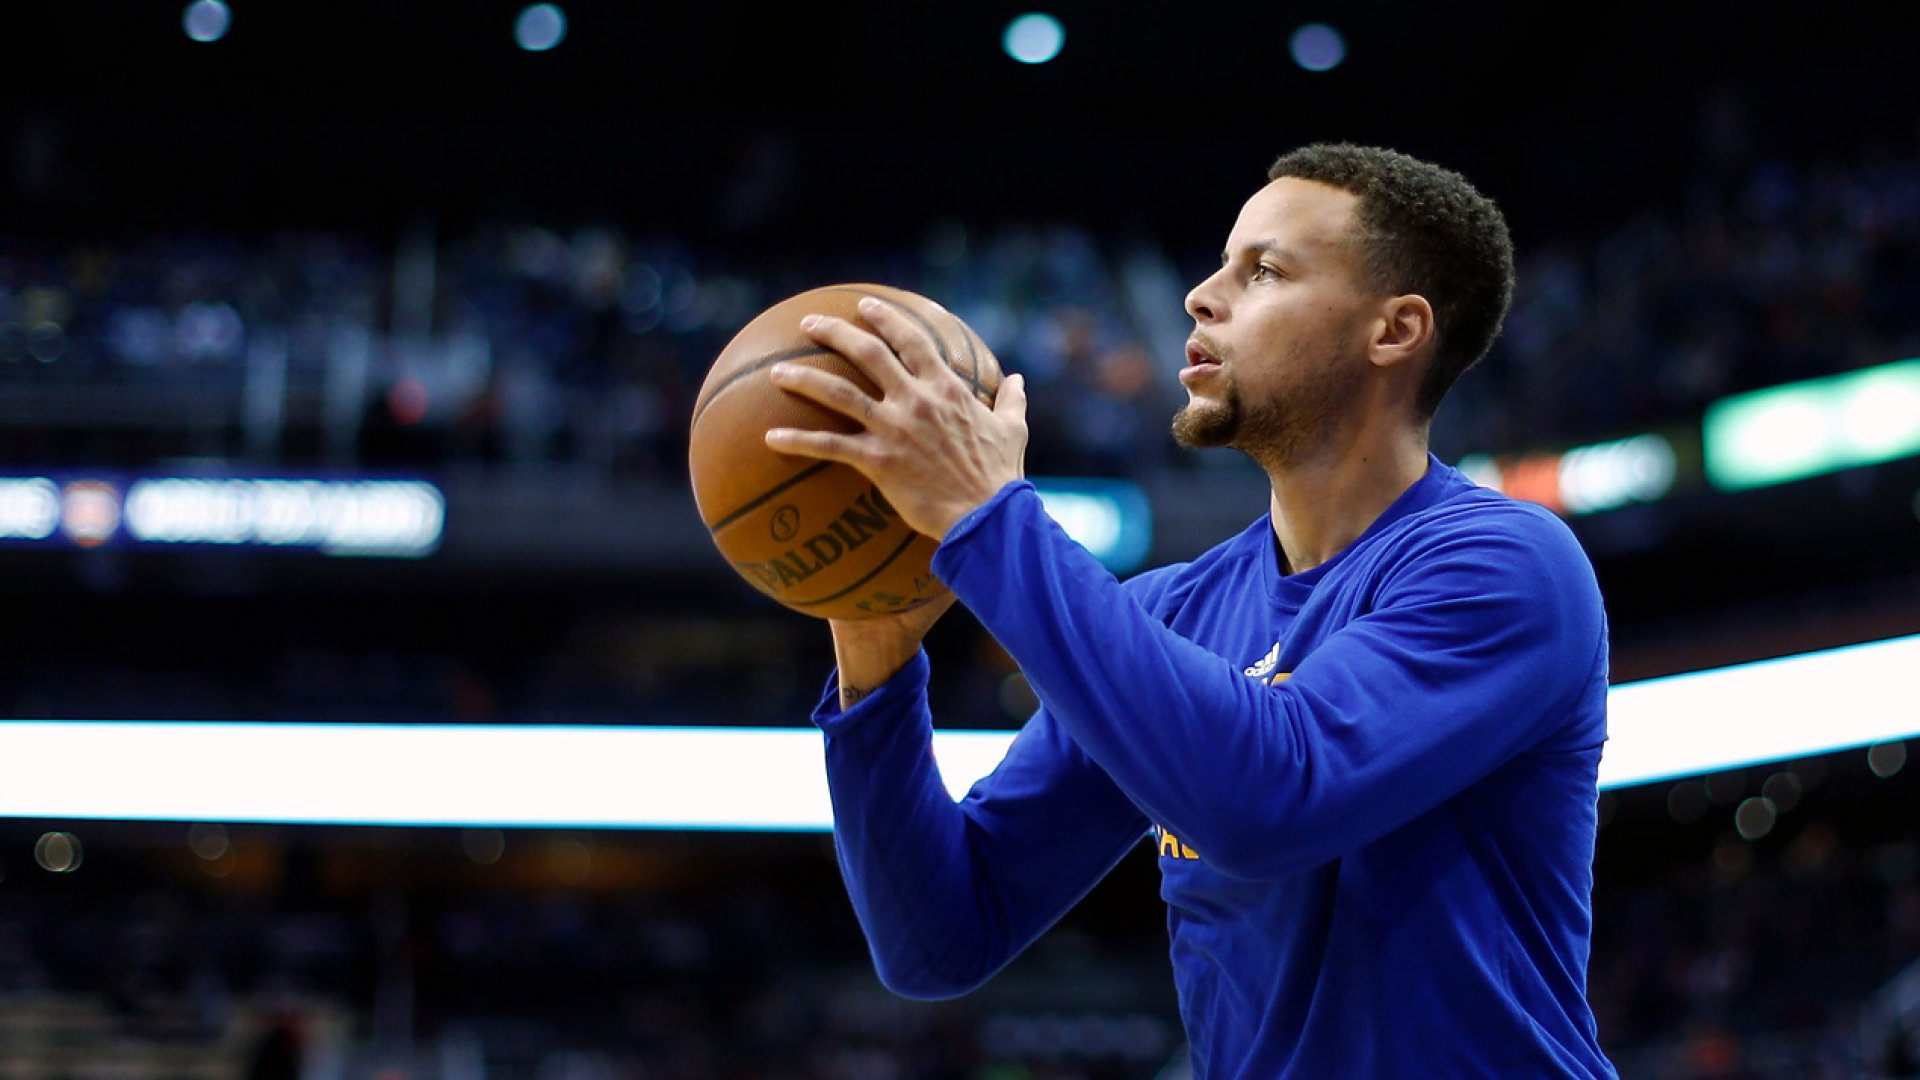 Why Steph Curry Could Be the Next Big Sports Star Turned Entrepreneur